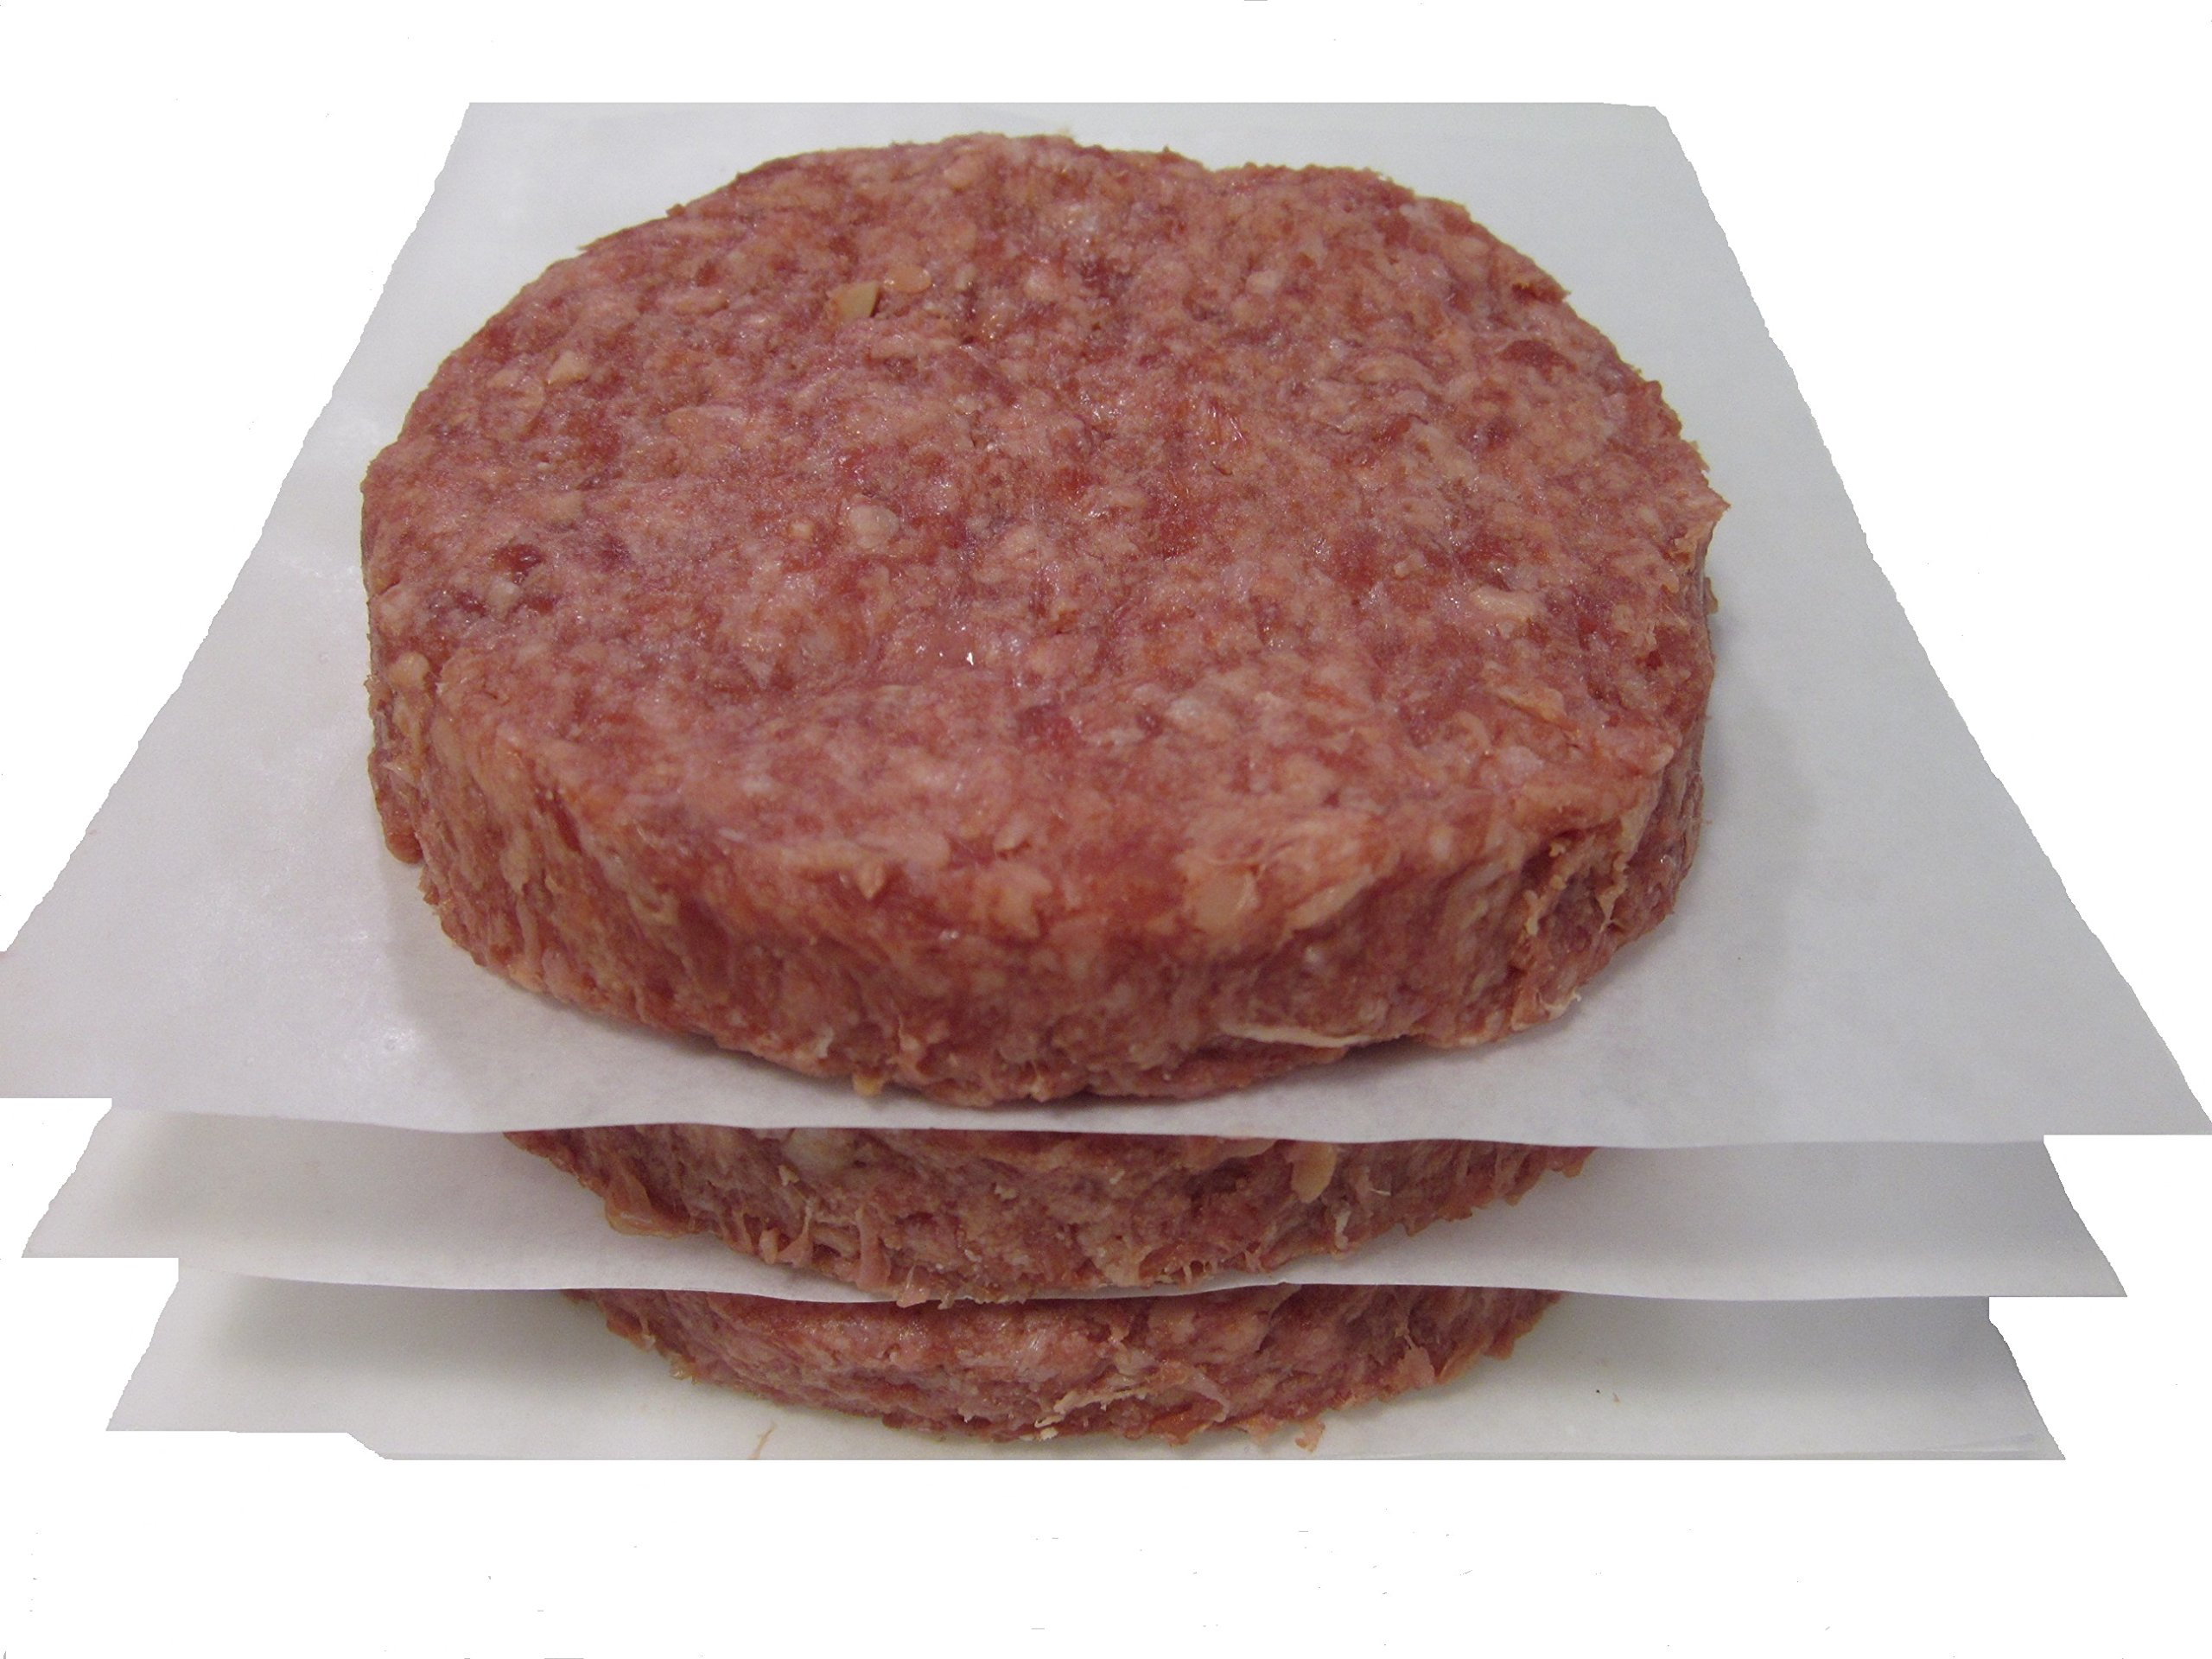 Buffalo 100% Burgers 5.3 oz. - 12 Packs of 3 - Case of 36 by TenderBison